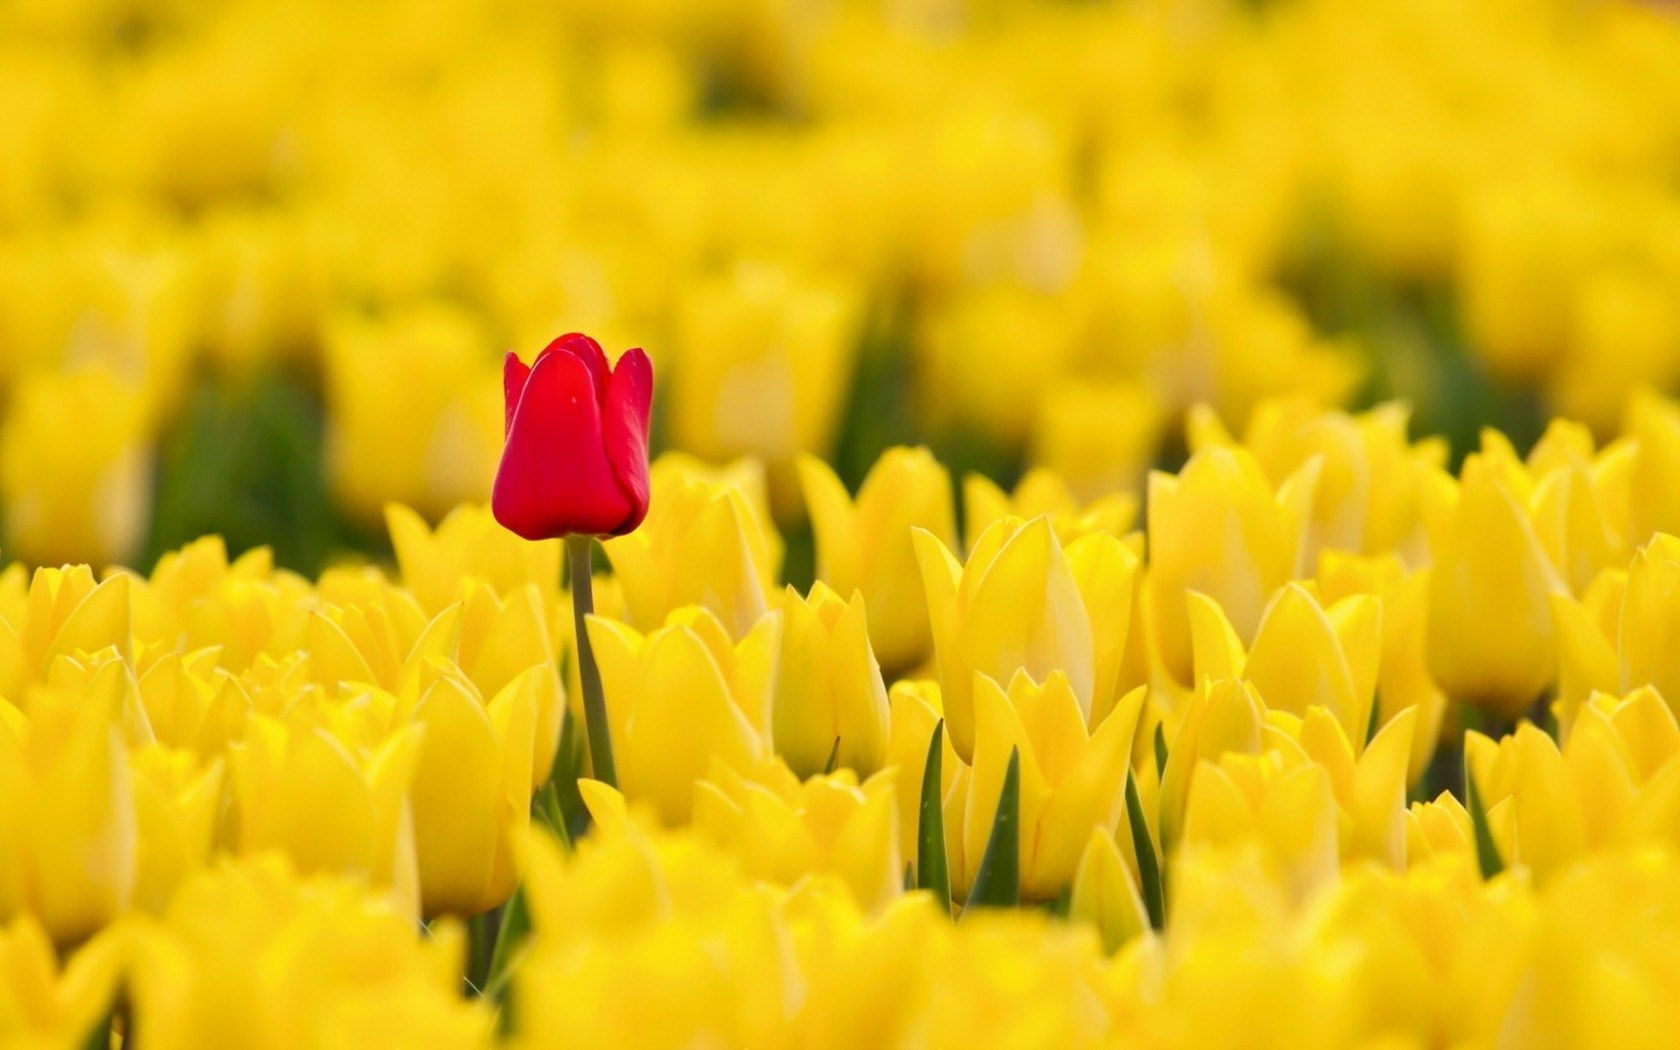 red and yellow tulips hd wallpaper Tulips Flowers HD